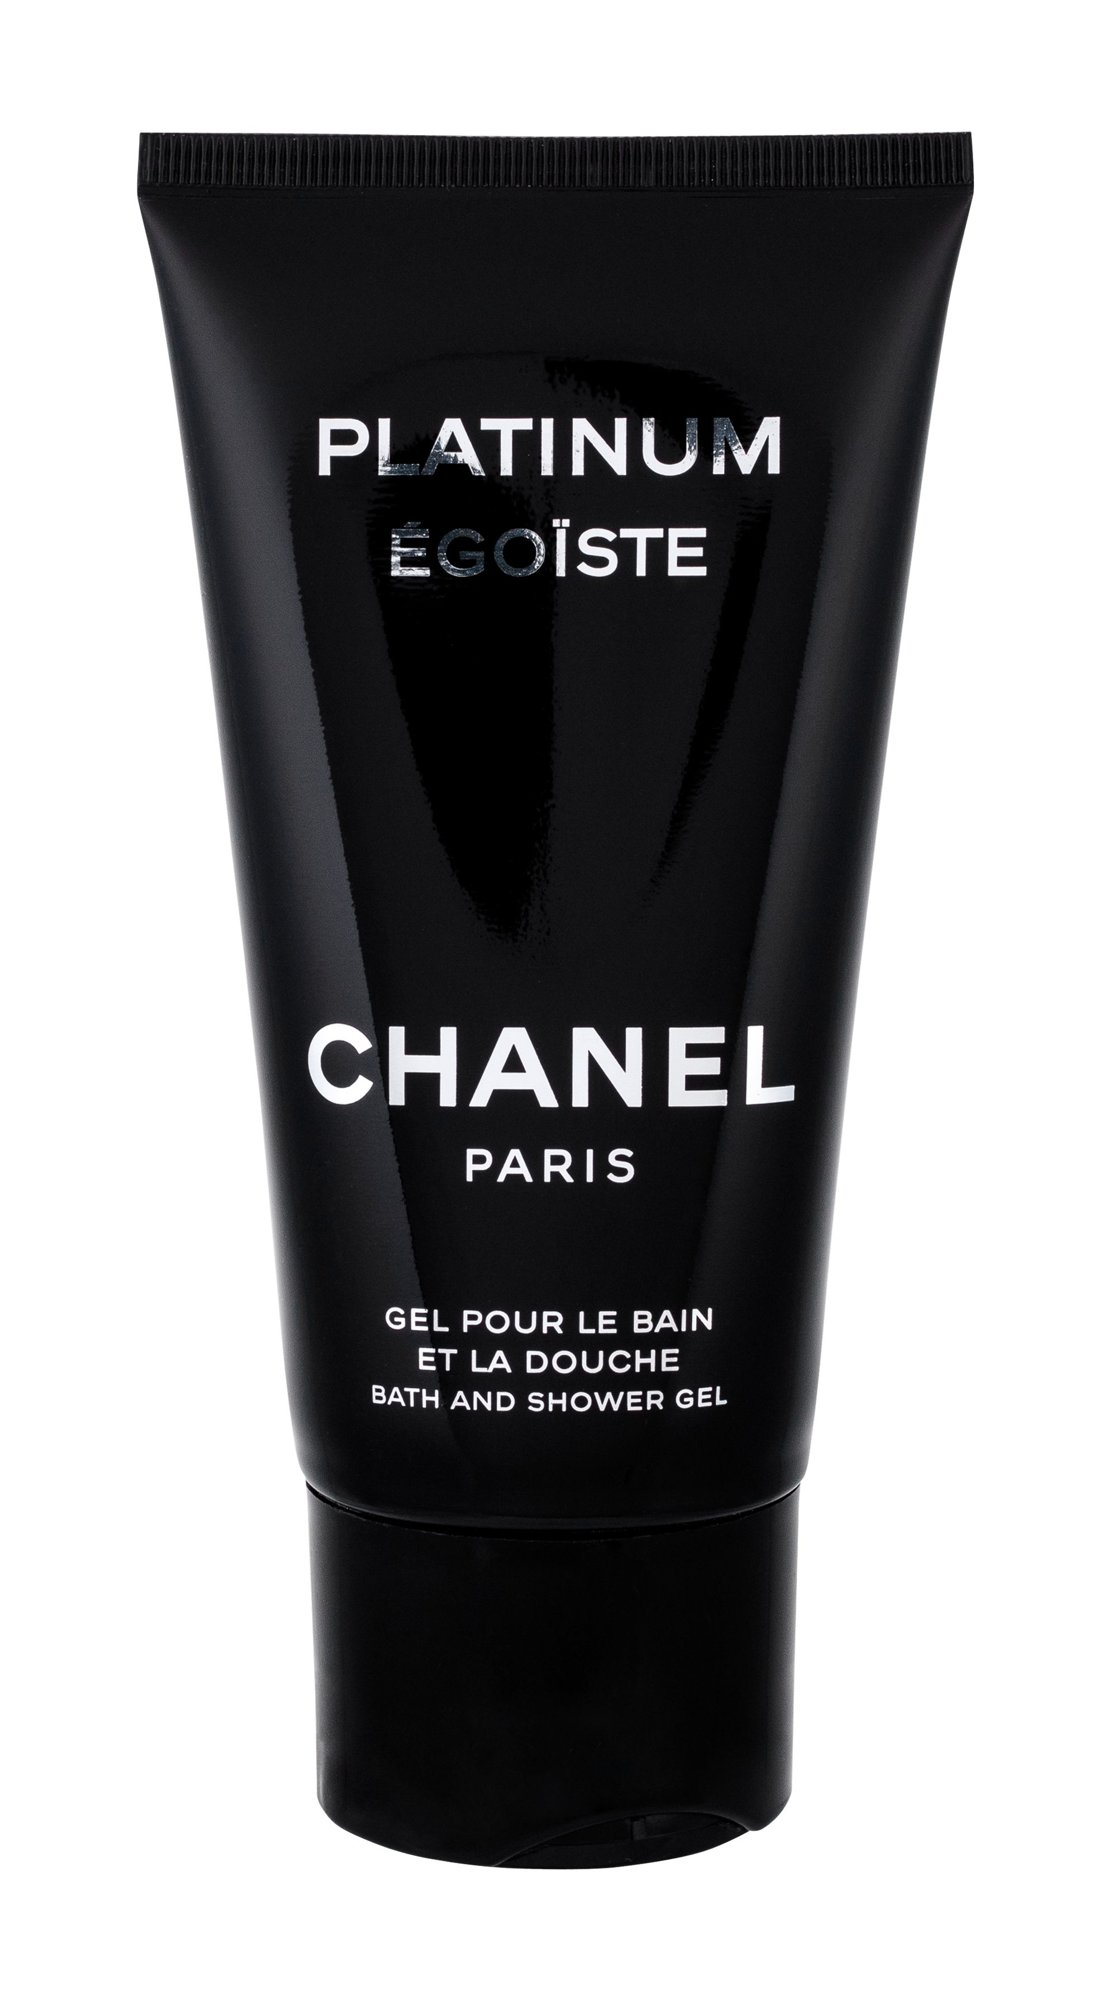 Chanel Platinum Egoiste Pour Homme Shower gel 150ml